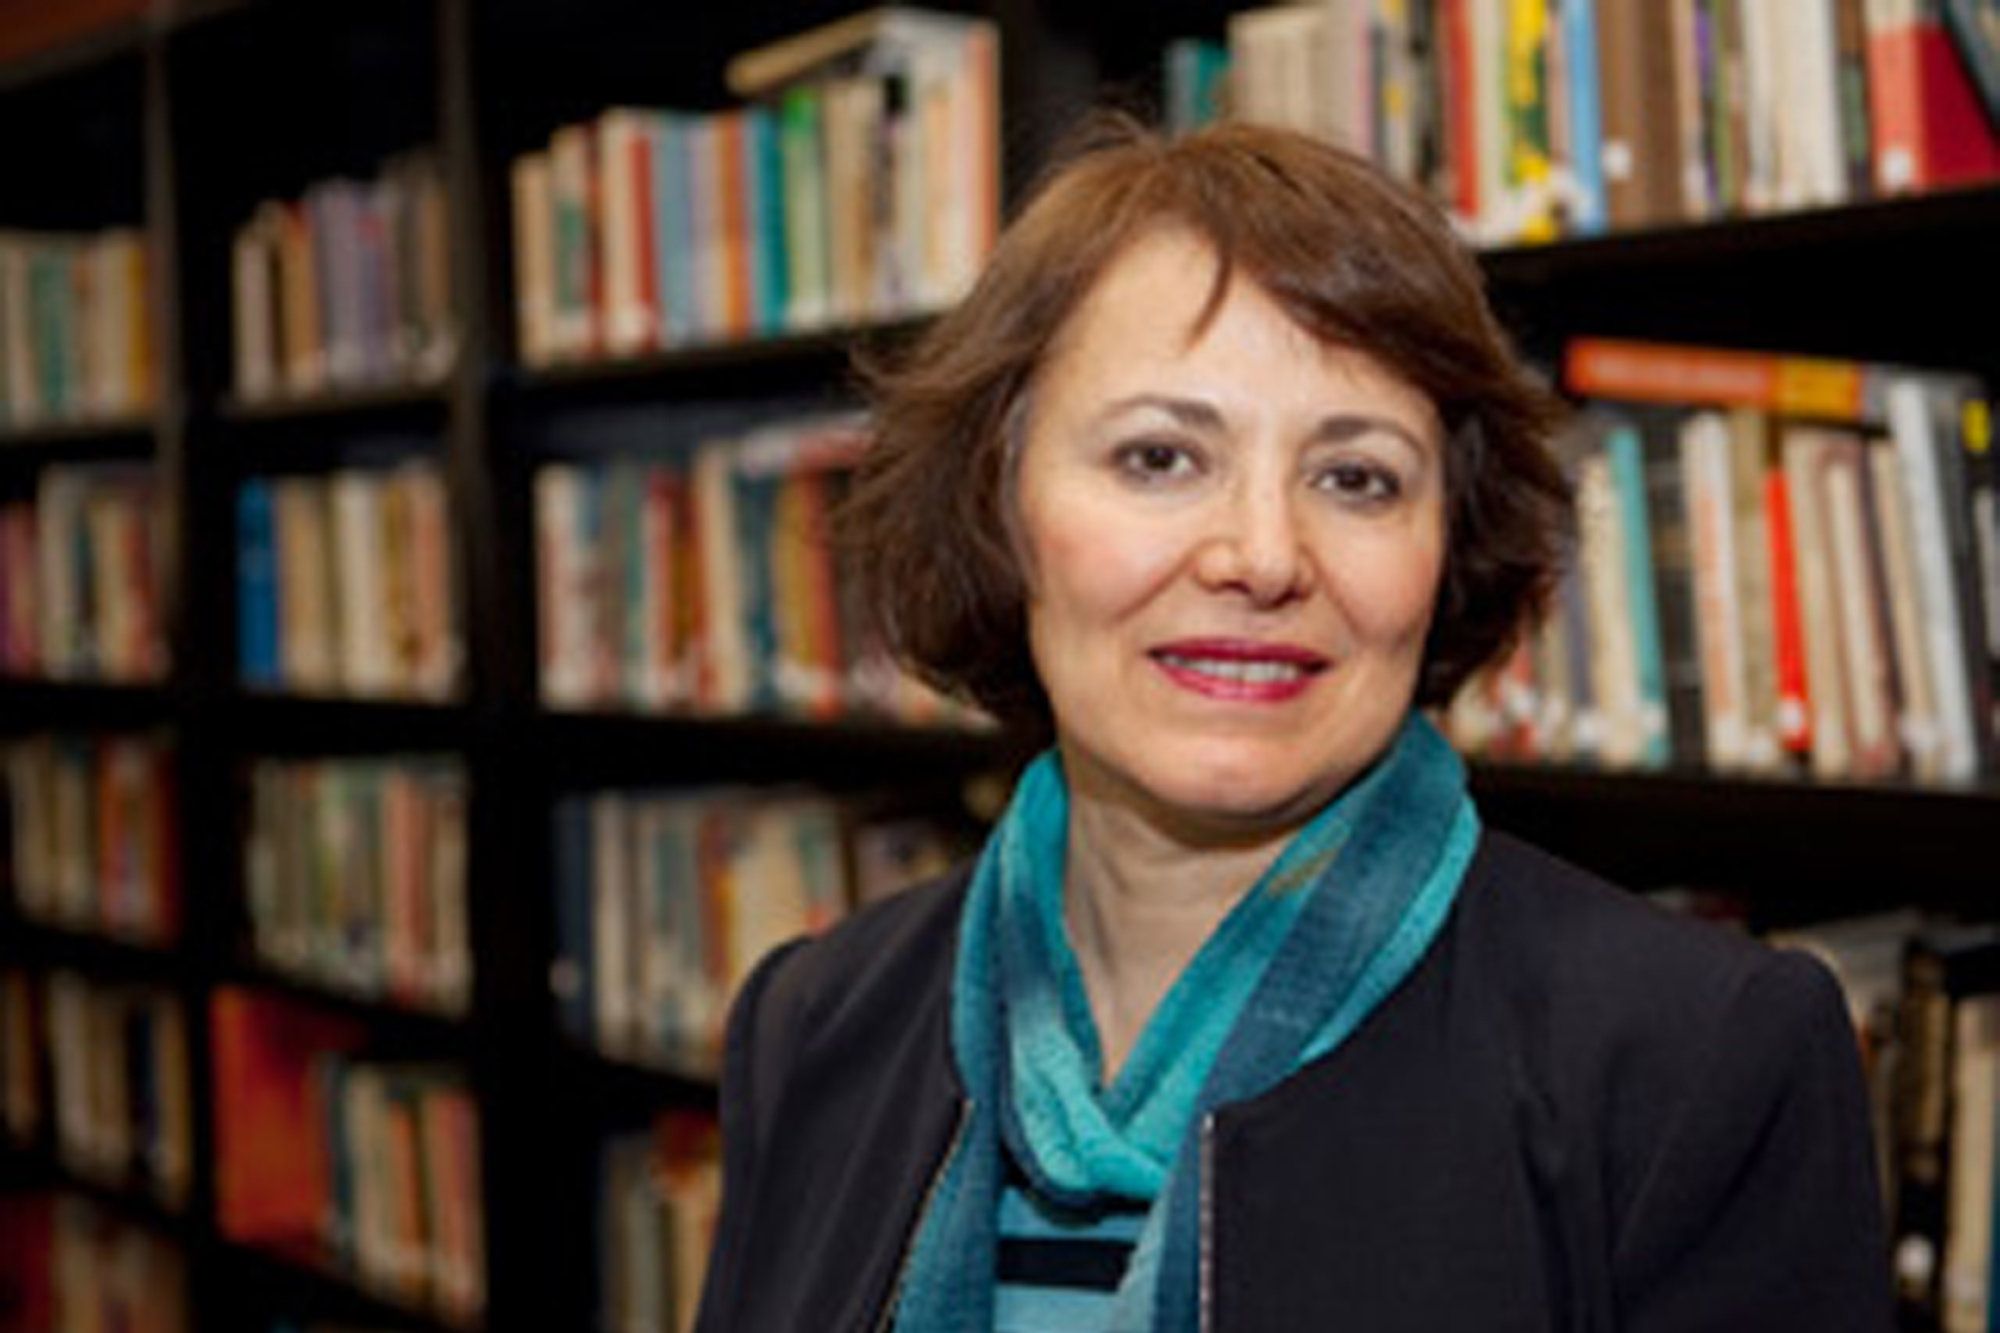 Two days before Homa Hoodfar (in photo) was due to fly out of Tehran in March, Iran's Revolutionary Guard raided her home, seizing her belongings and questioning her. (Photo: Concordia University)